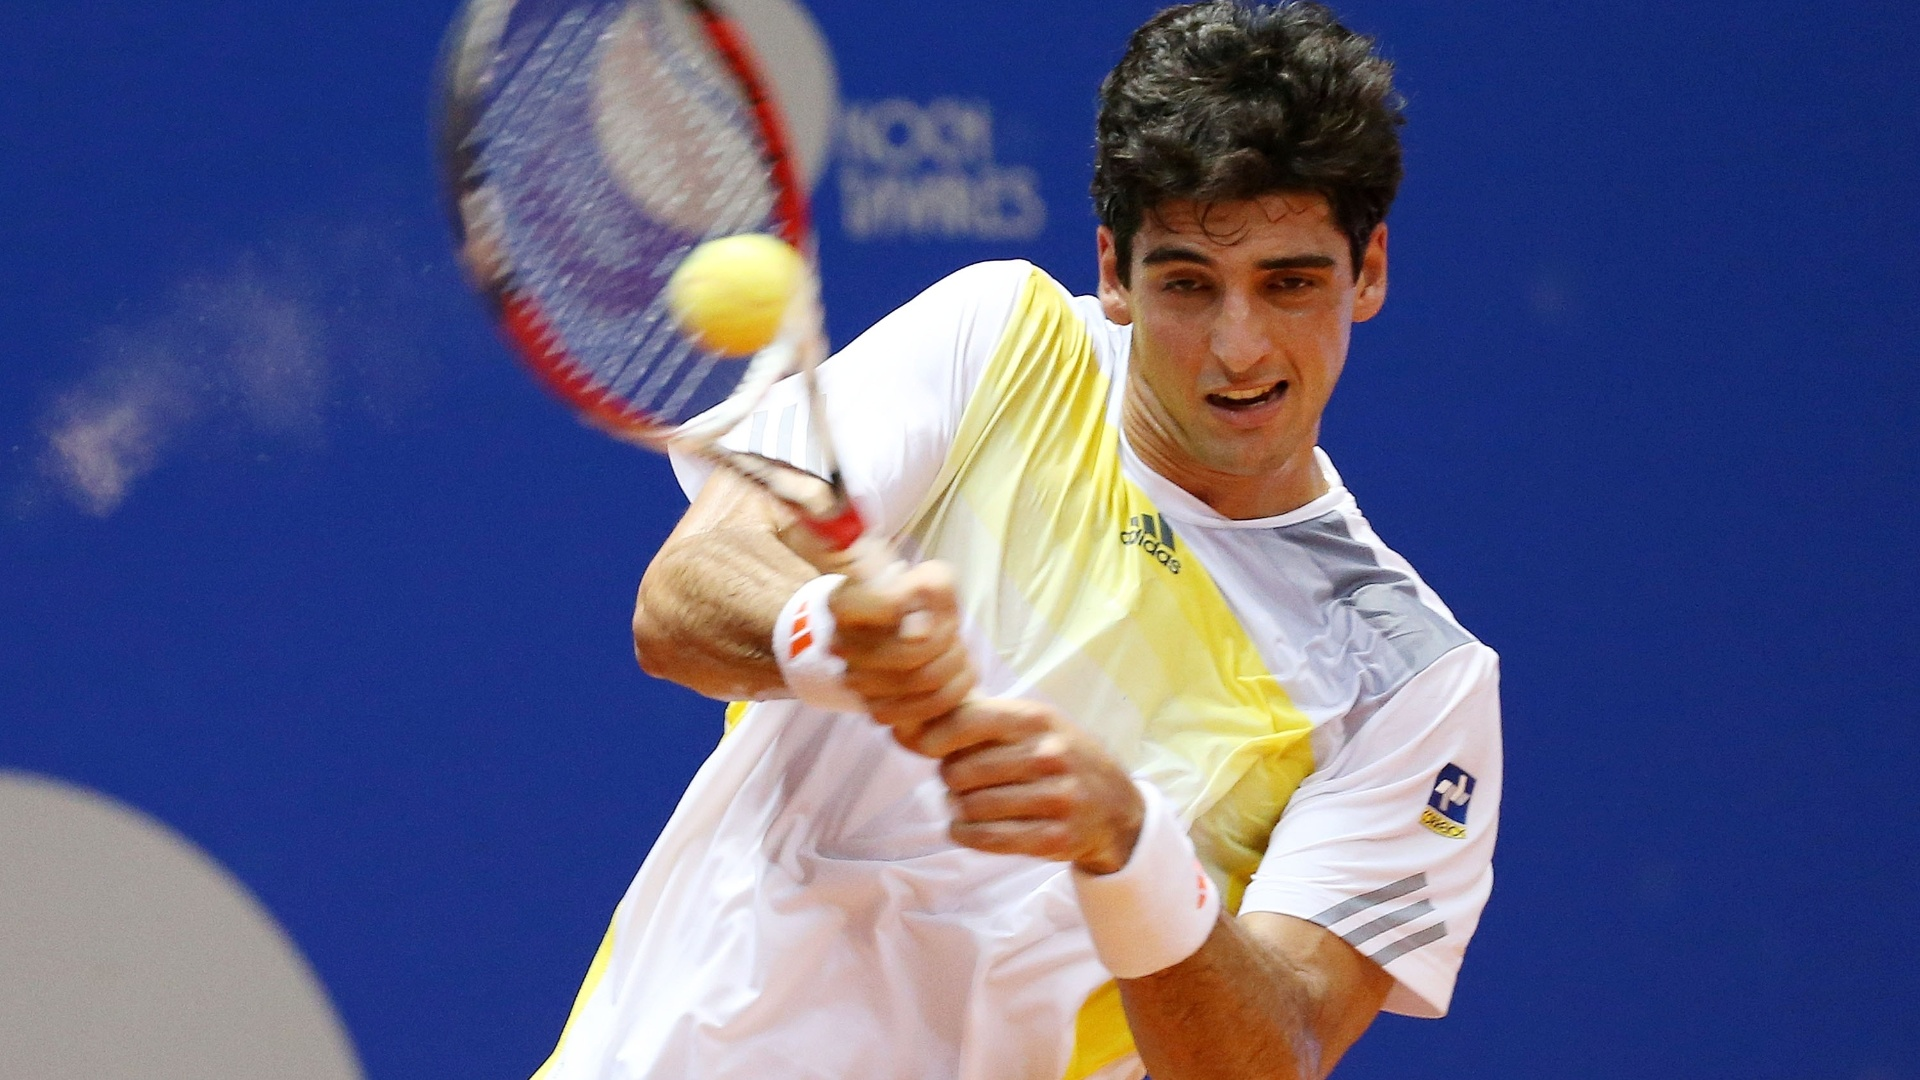 12.fev.2013 - Thomaz Bellucci contra o compatriota Guilherme Clezar